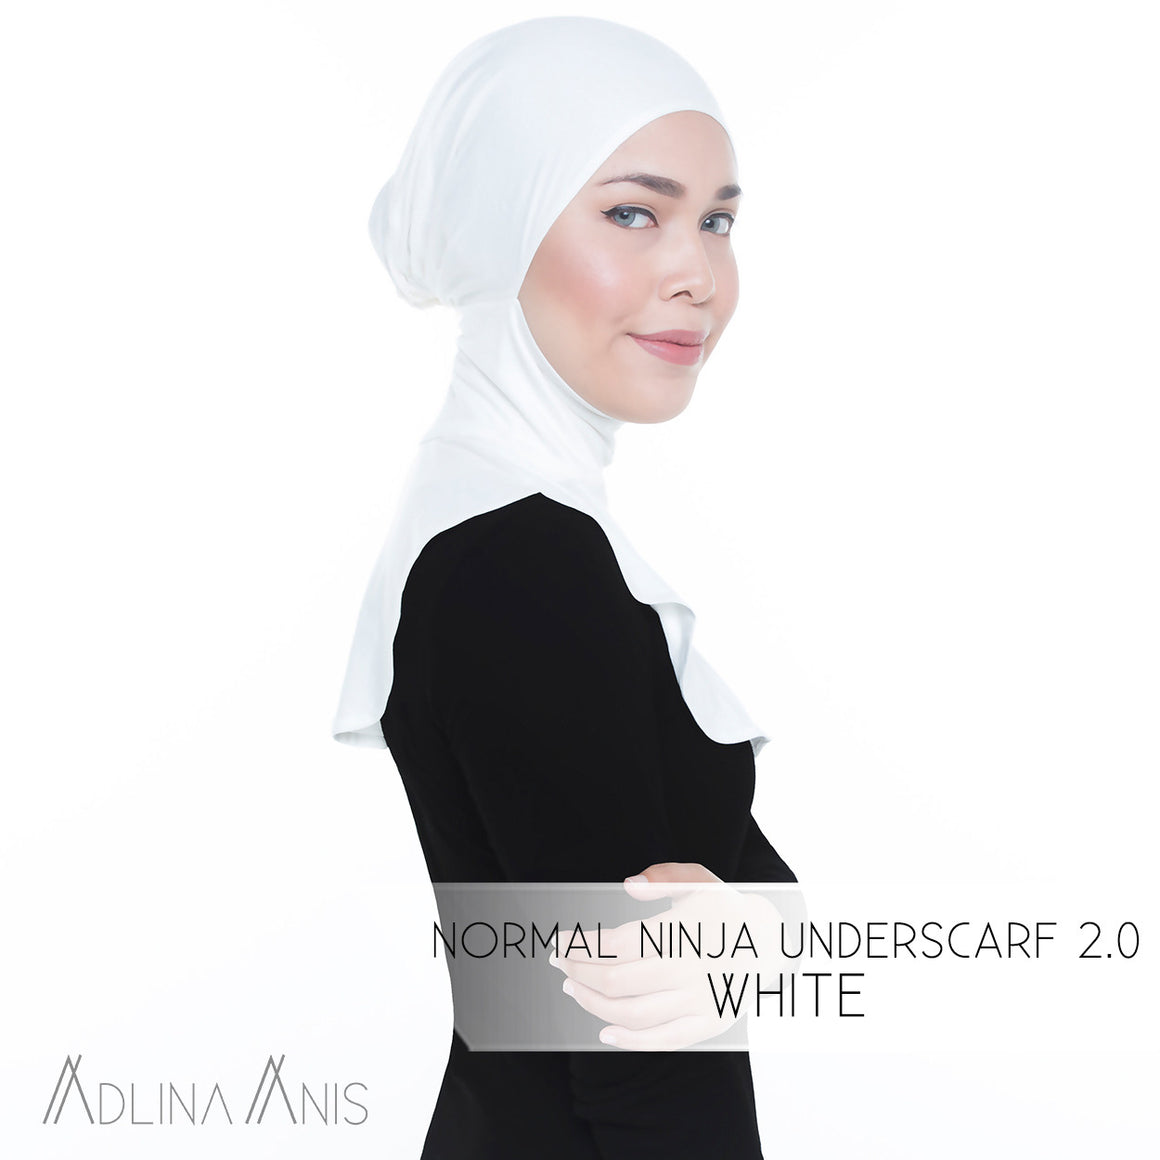 Normal Ninja Underscarf 2.0 - White